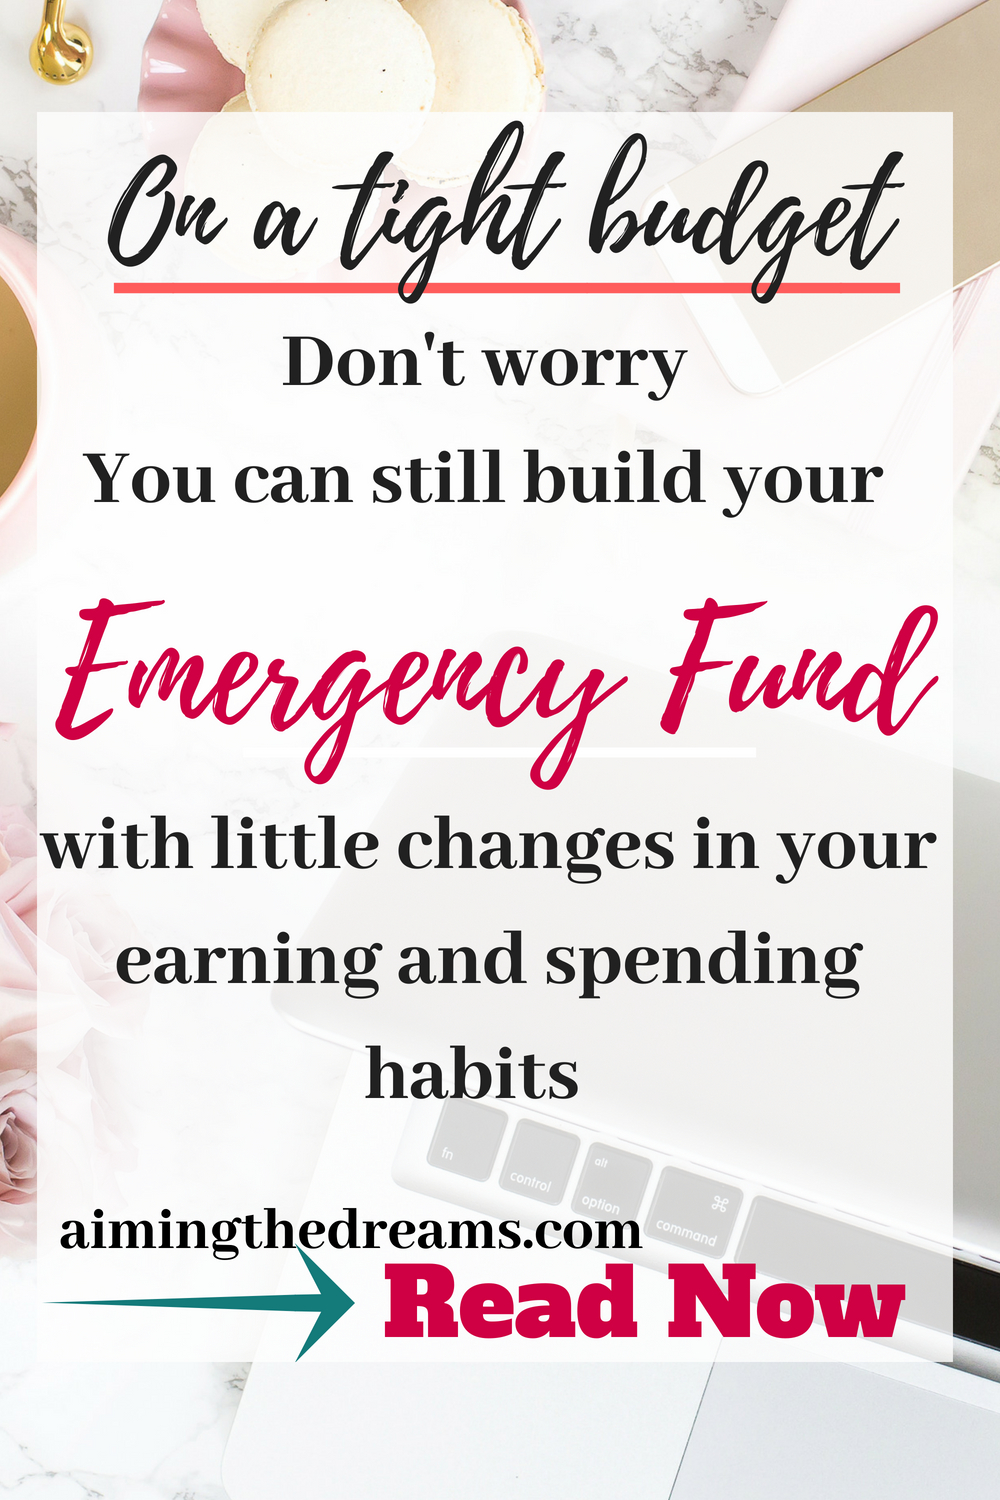 You need to build your emergency fund. It is a necessity not a luxury.